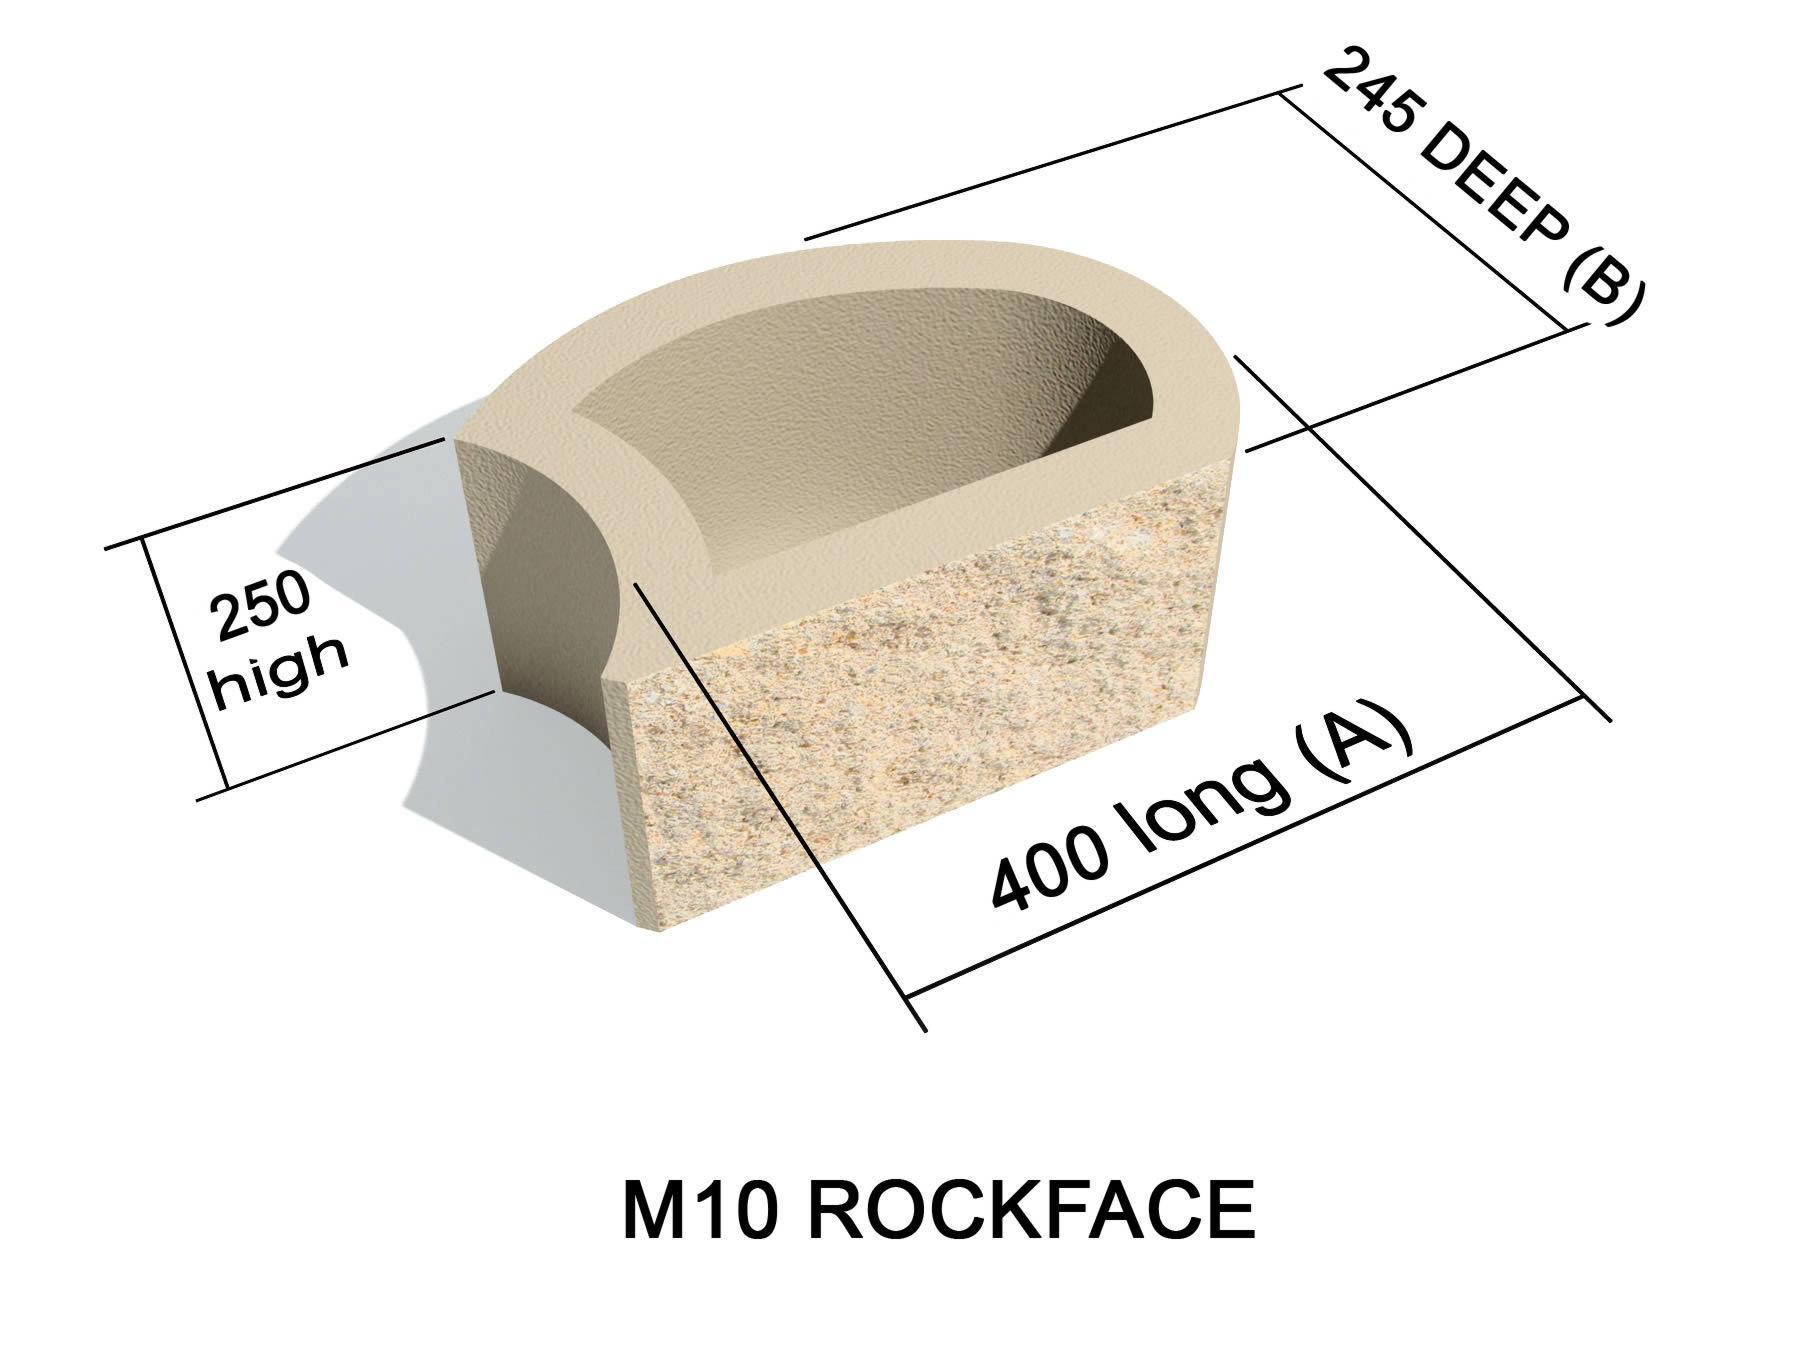 M10 Rock face block